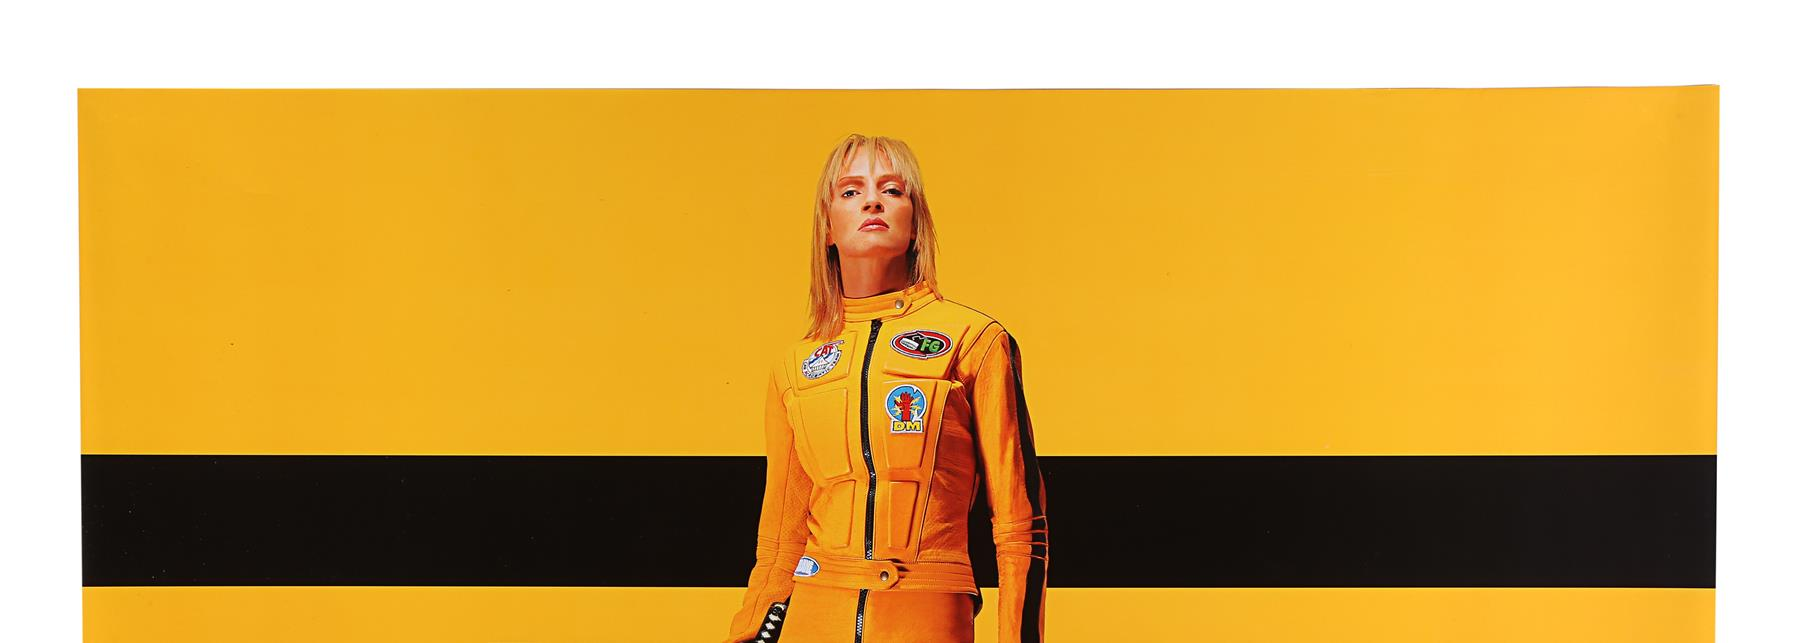 KILL BILL (2003), KILL BILL: VOLUME II (2004) - Two UK Quads, 2003 and 2004 - Image 7 of 9